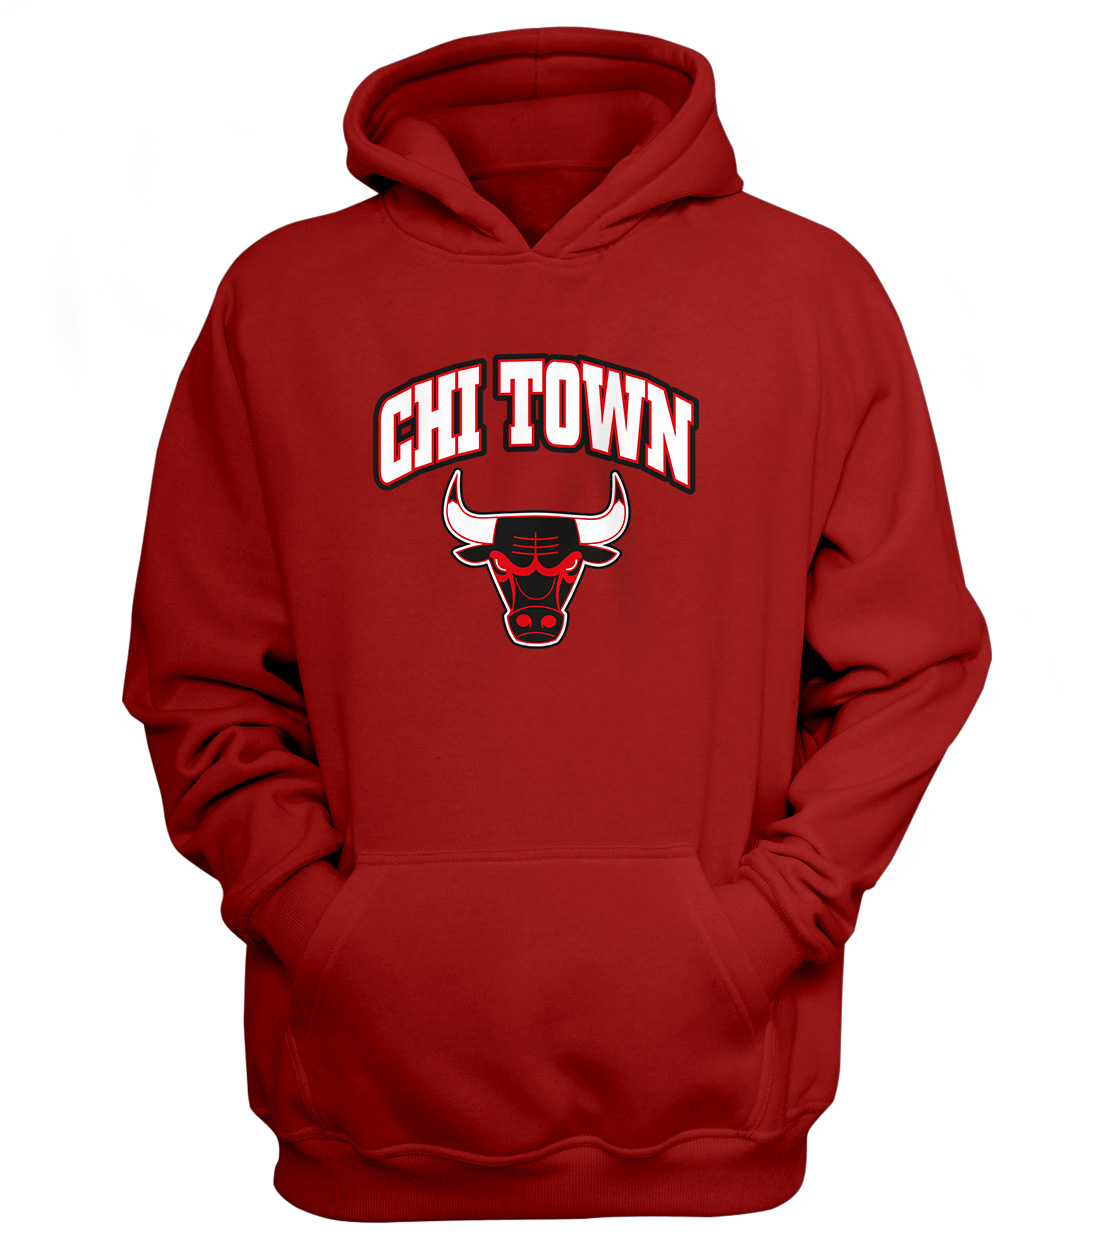 Chicago Bulls Chi Town Hoodie  (HD-RED-NP-47-NBA-CHI-TOWN)